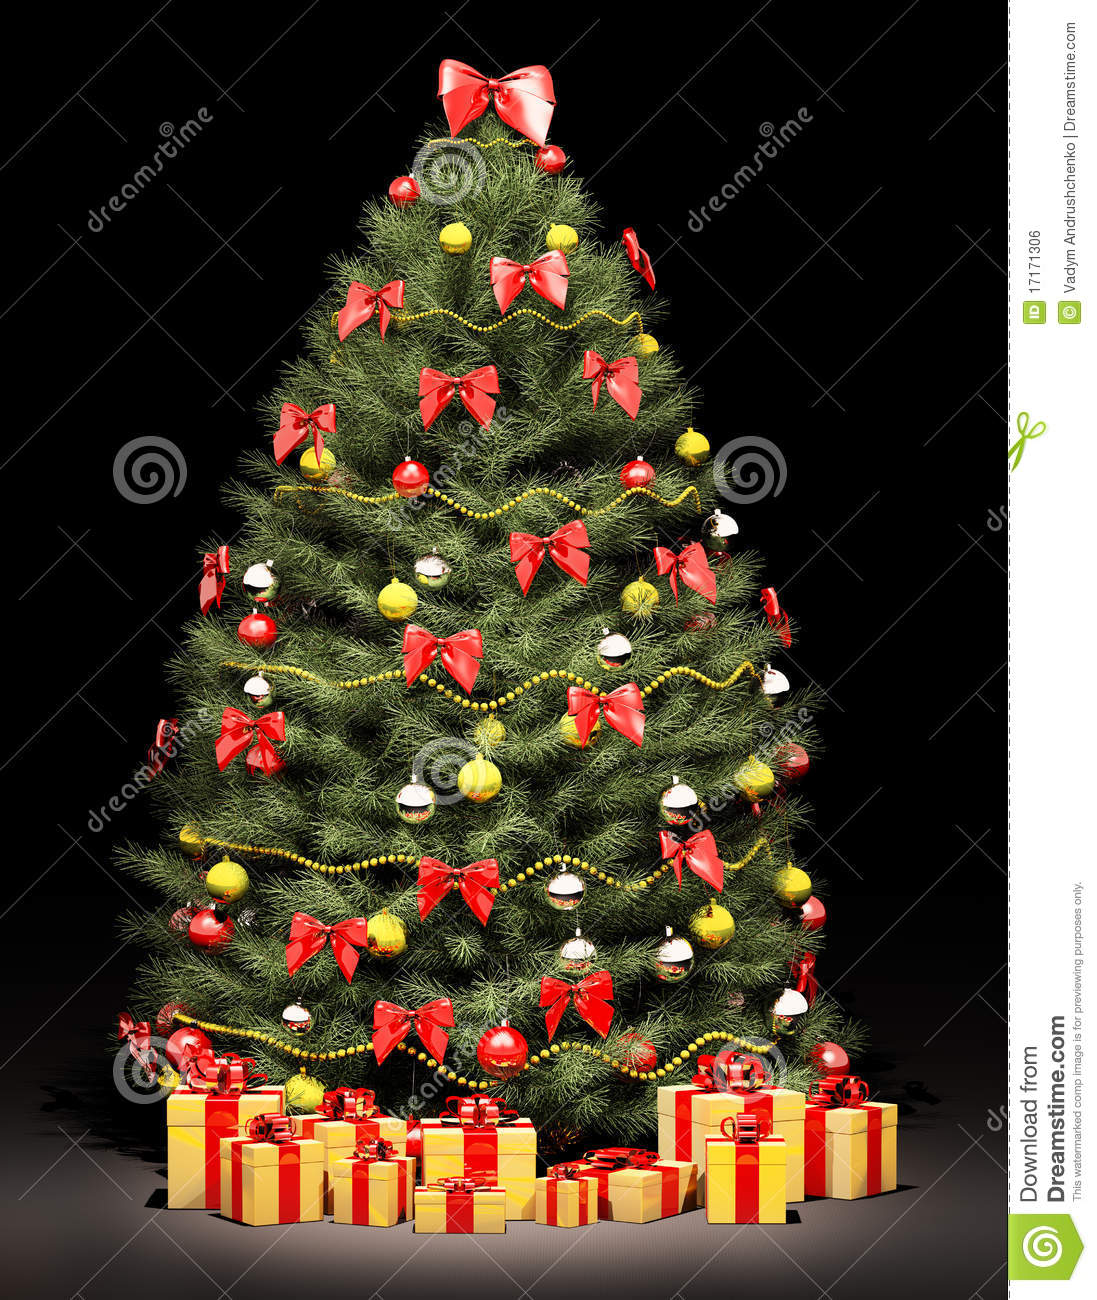 Christmas trees decorated with bows christmas fir tree decorated